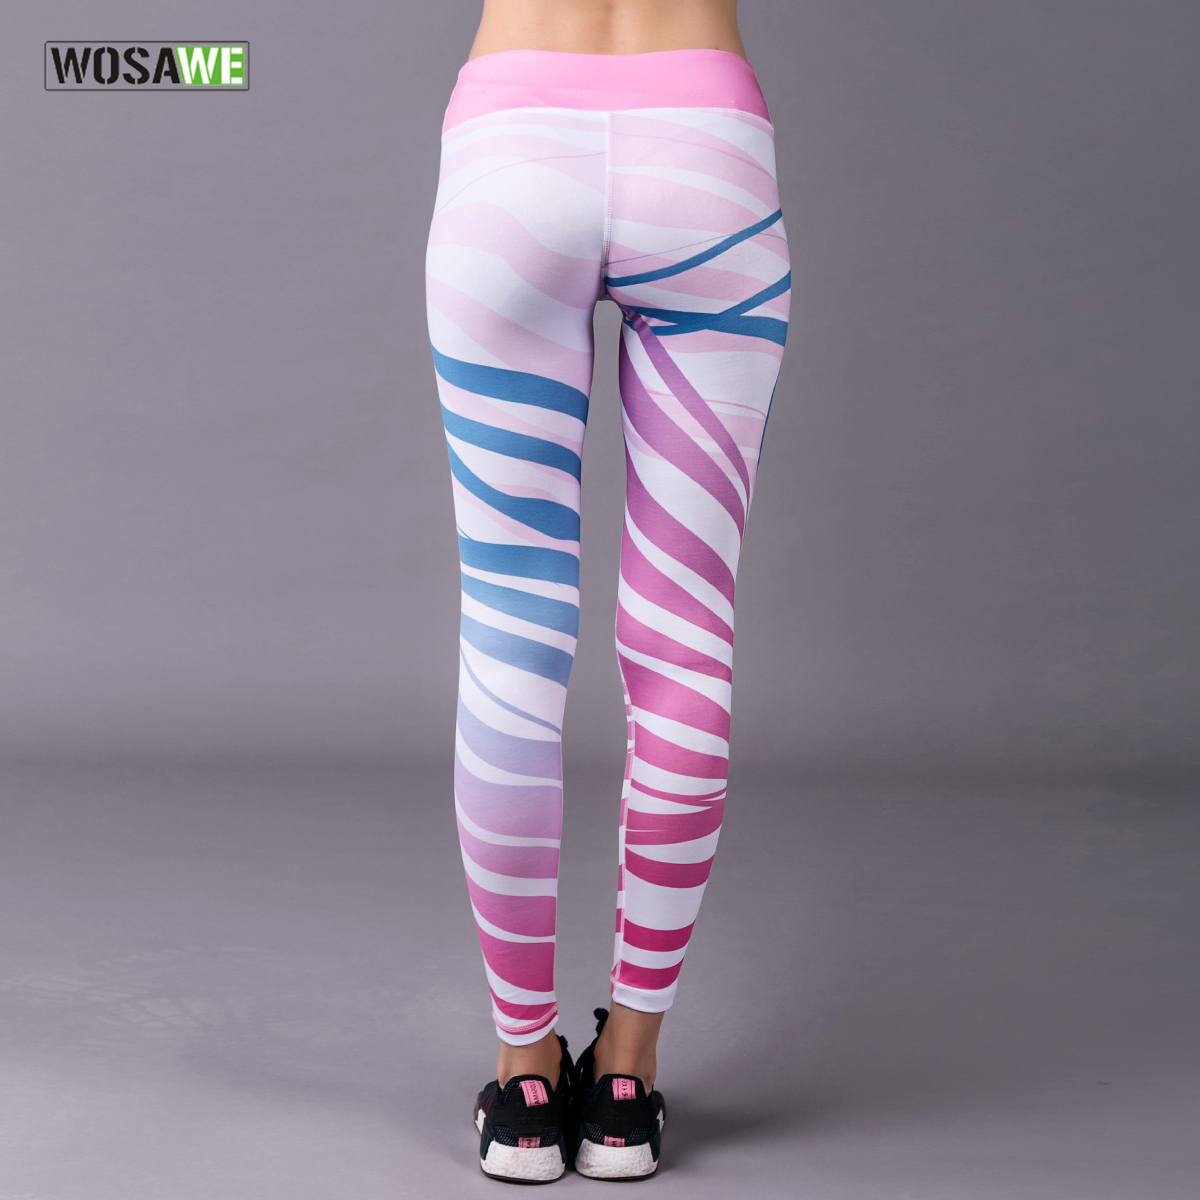 WOSAWE Printed Yoga Pants Quick Dry Slim Gym Running Sports Pant High Waist Fitness Leggings Compression Workout Tights 9/10